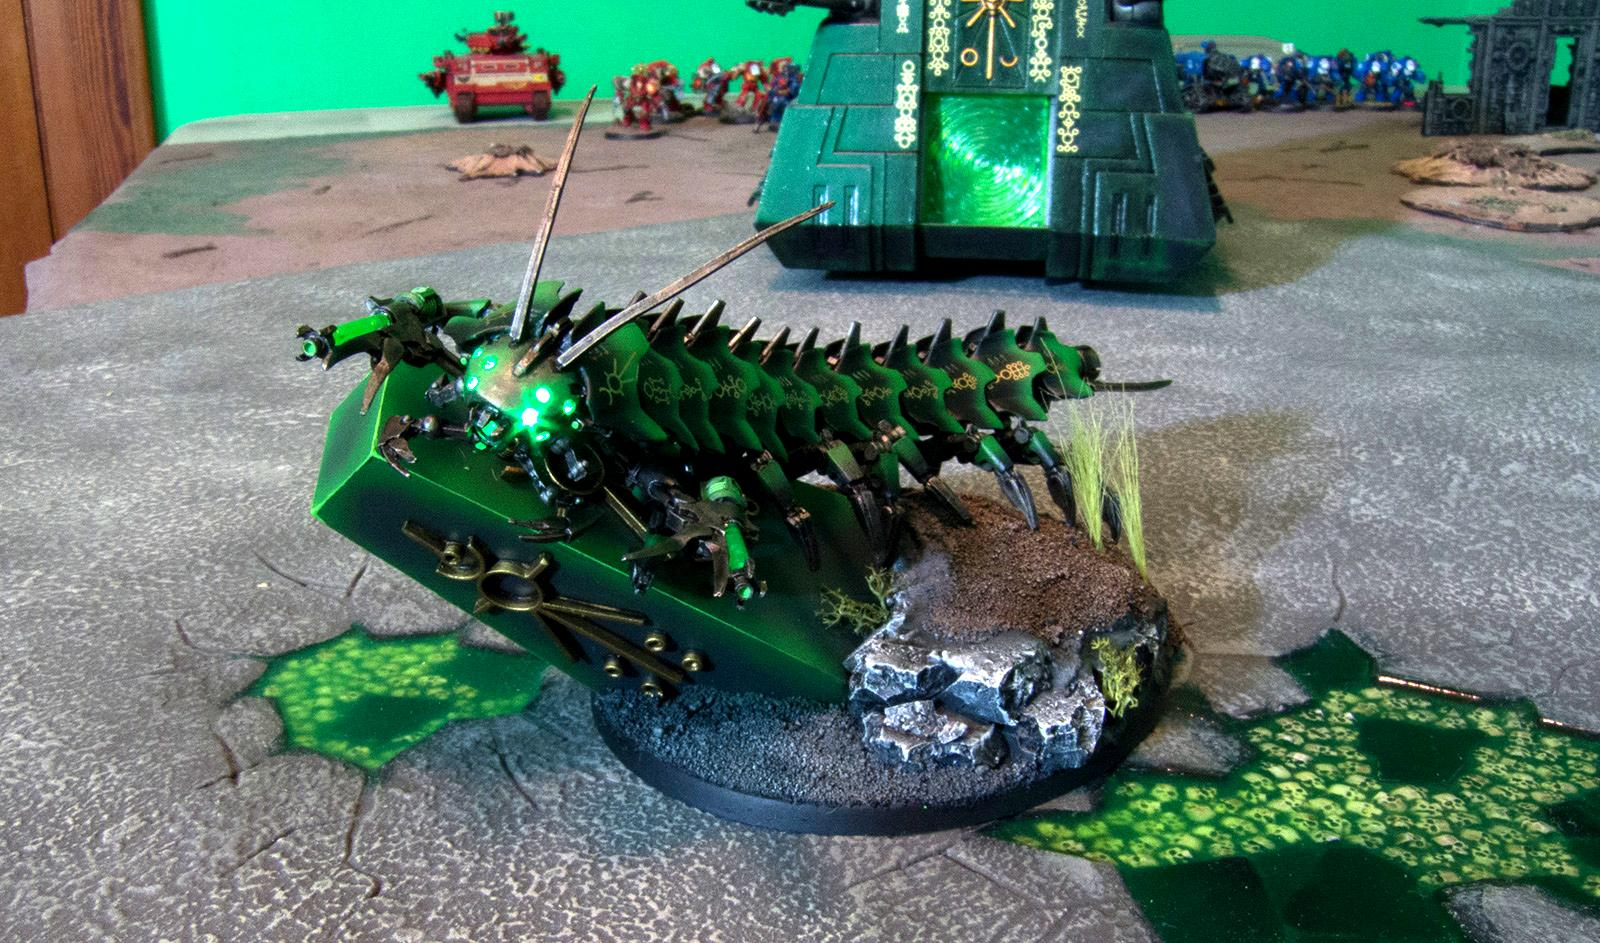 Conversion, Forge World, LED, Lighting, Necrons, Ouze, Tomb Stalker, Warhammer 40,000